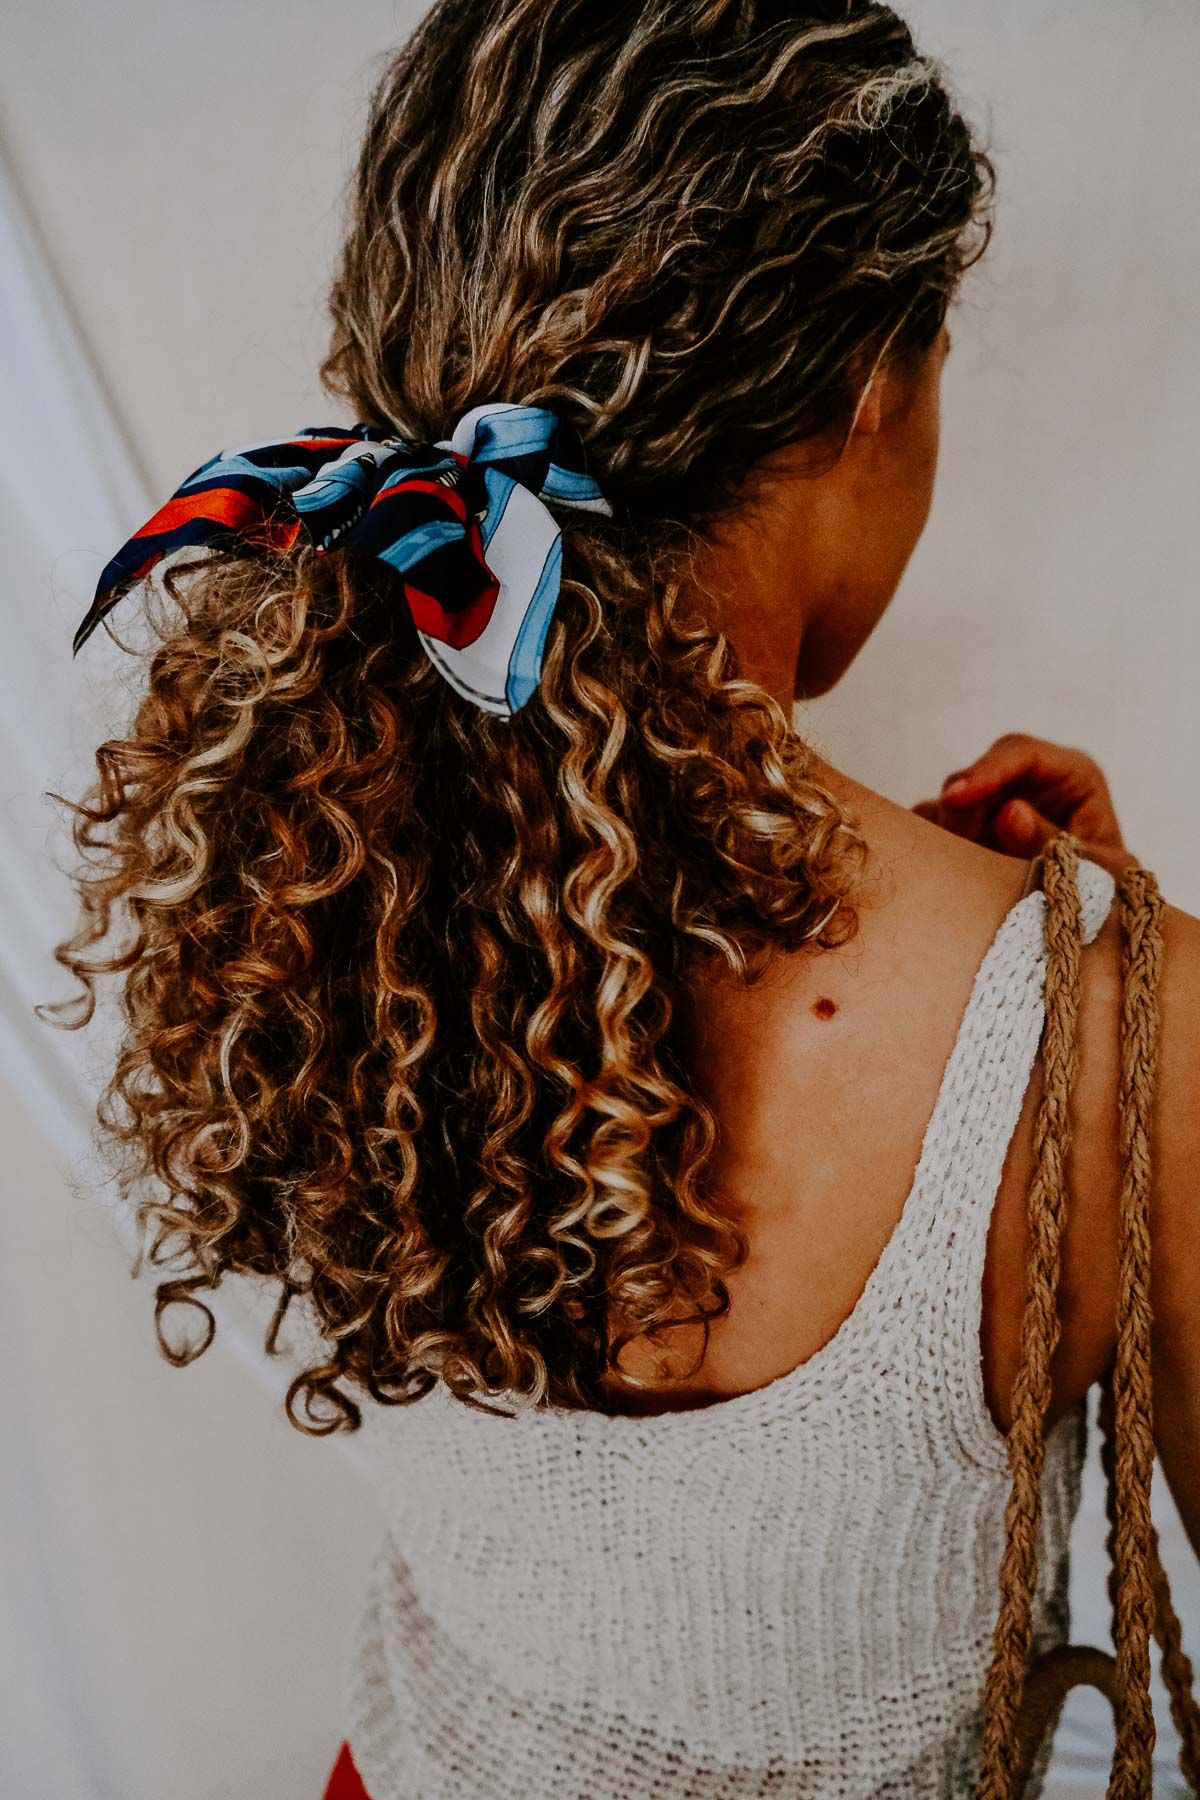 Hair Accessories That Will Make You Look Instantly Stylish - MY CHIC OBSESSION